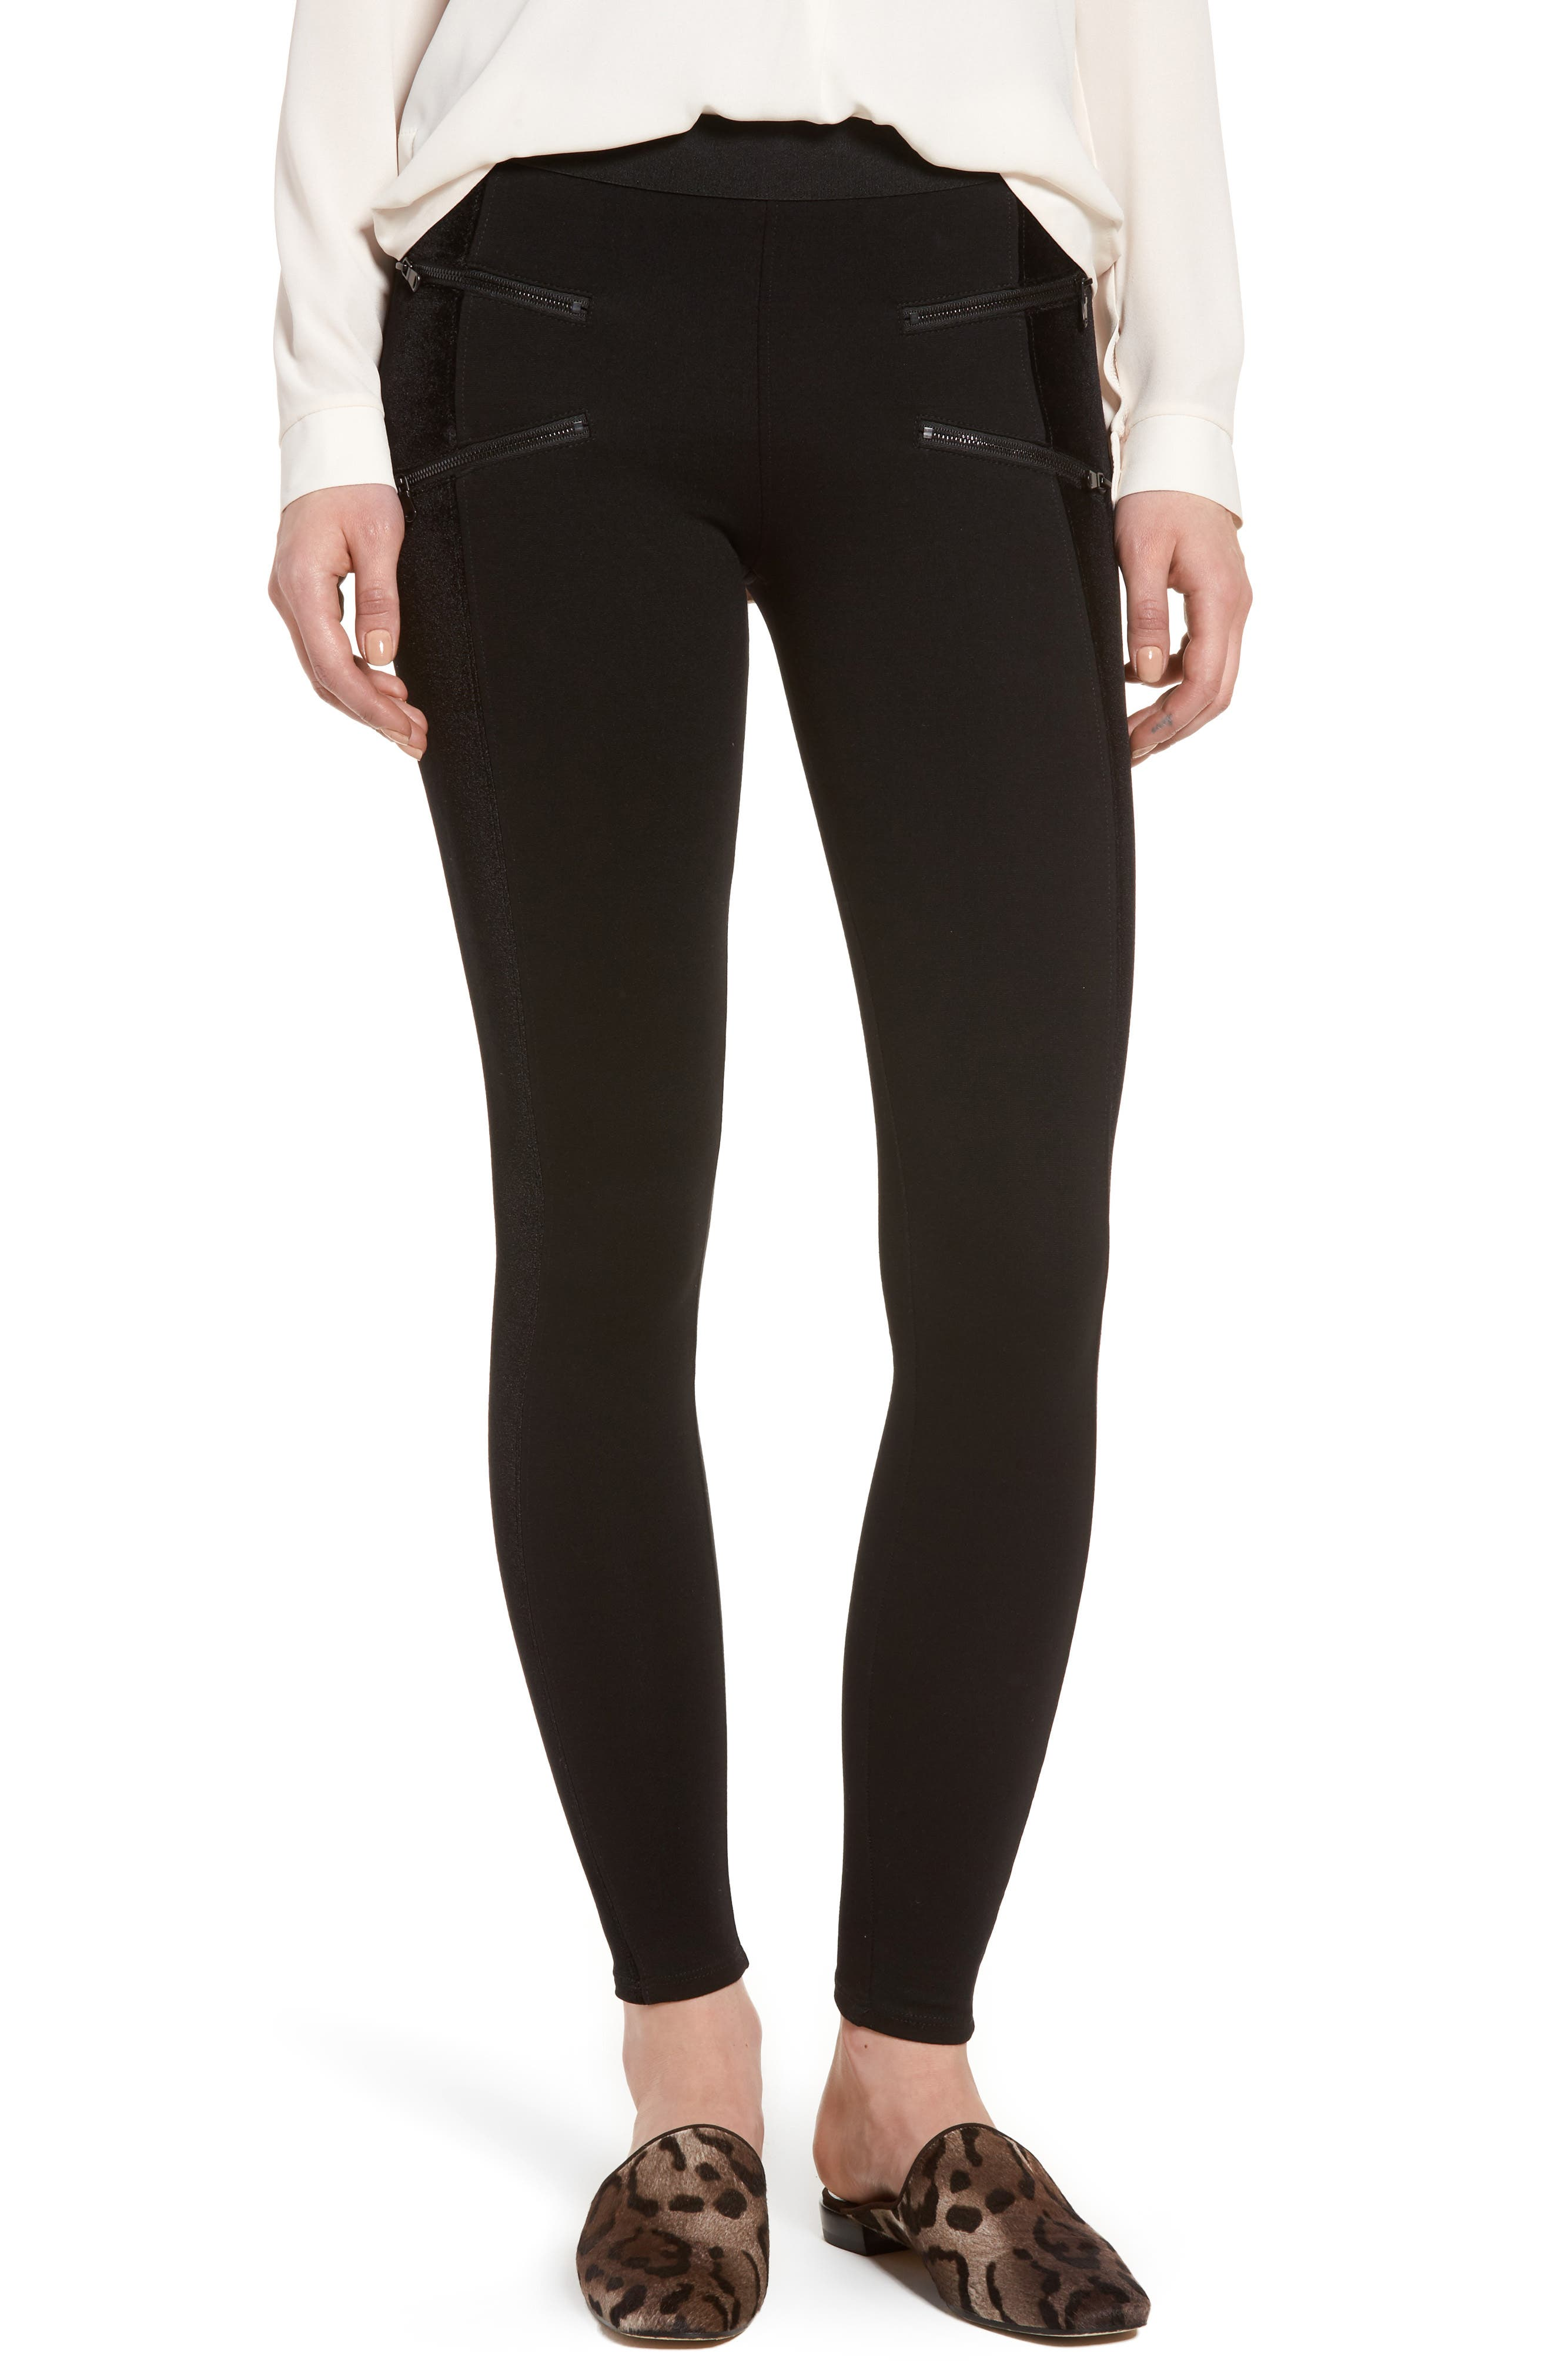 Starburst Zip Combo Leggings,                             Main thumbnail 1, color,                             Black